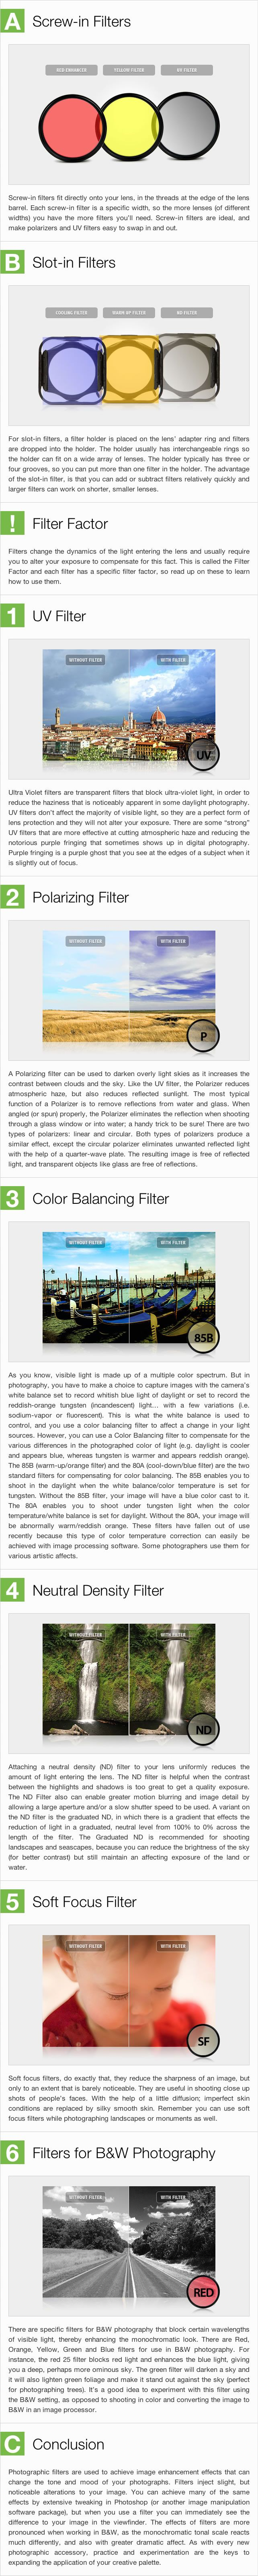 This excellent guide from Exposure Guide shows the differences between Lens Filters - Lens filters are transparent or translucent glass or gelatin elements that attach to the front of a lens. They protect the camera lens, alter the characteristics of light passing through the lens or add special effects and colors to an image. They come in two types -- screw-in filters and slot-in filters.